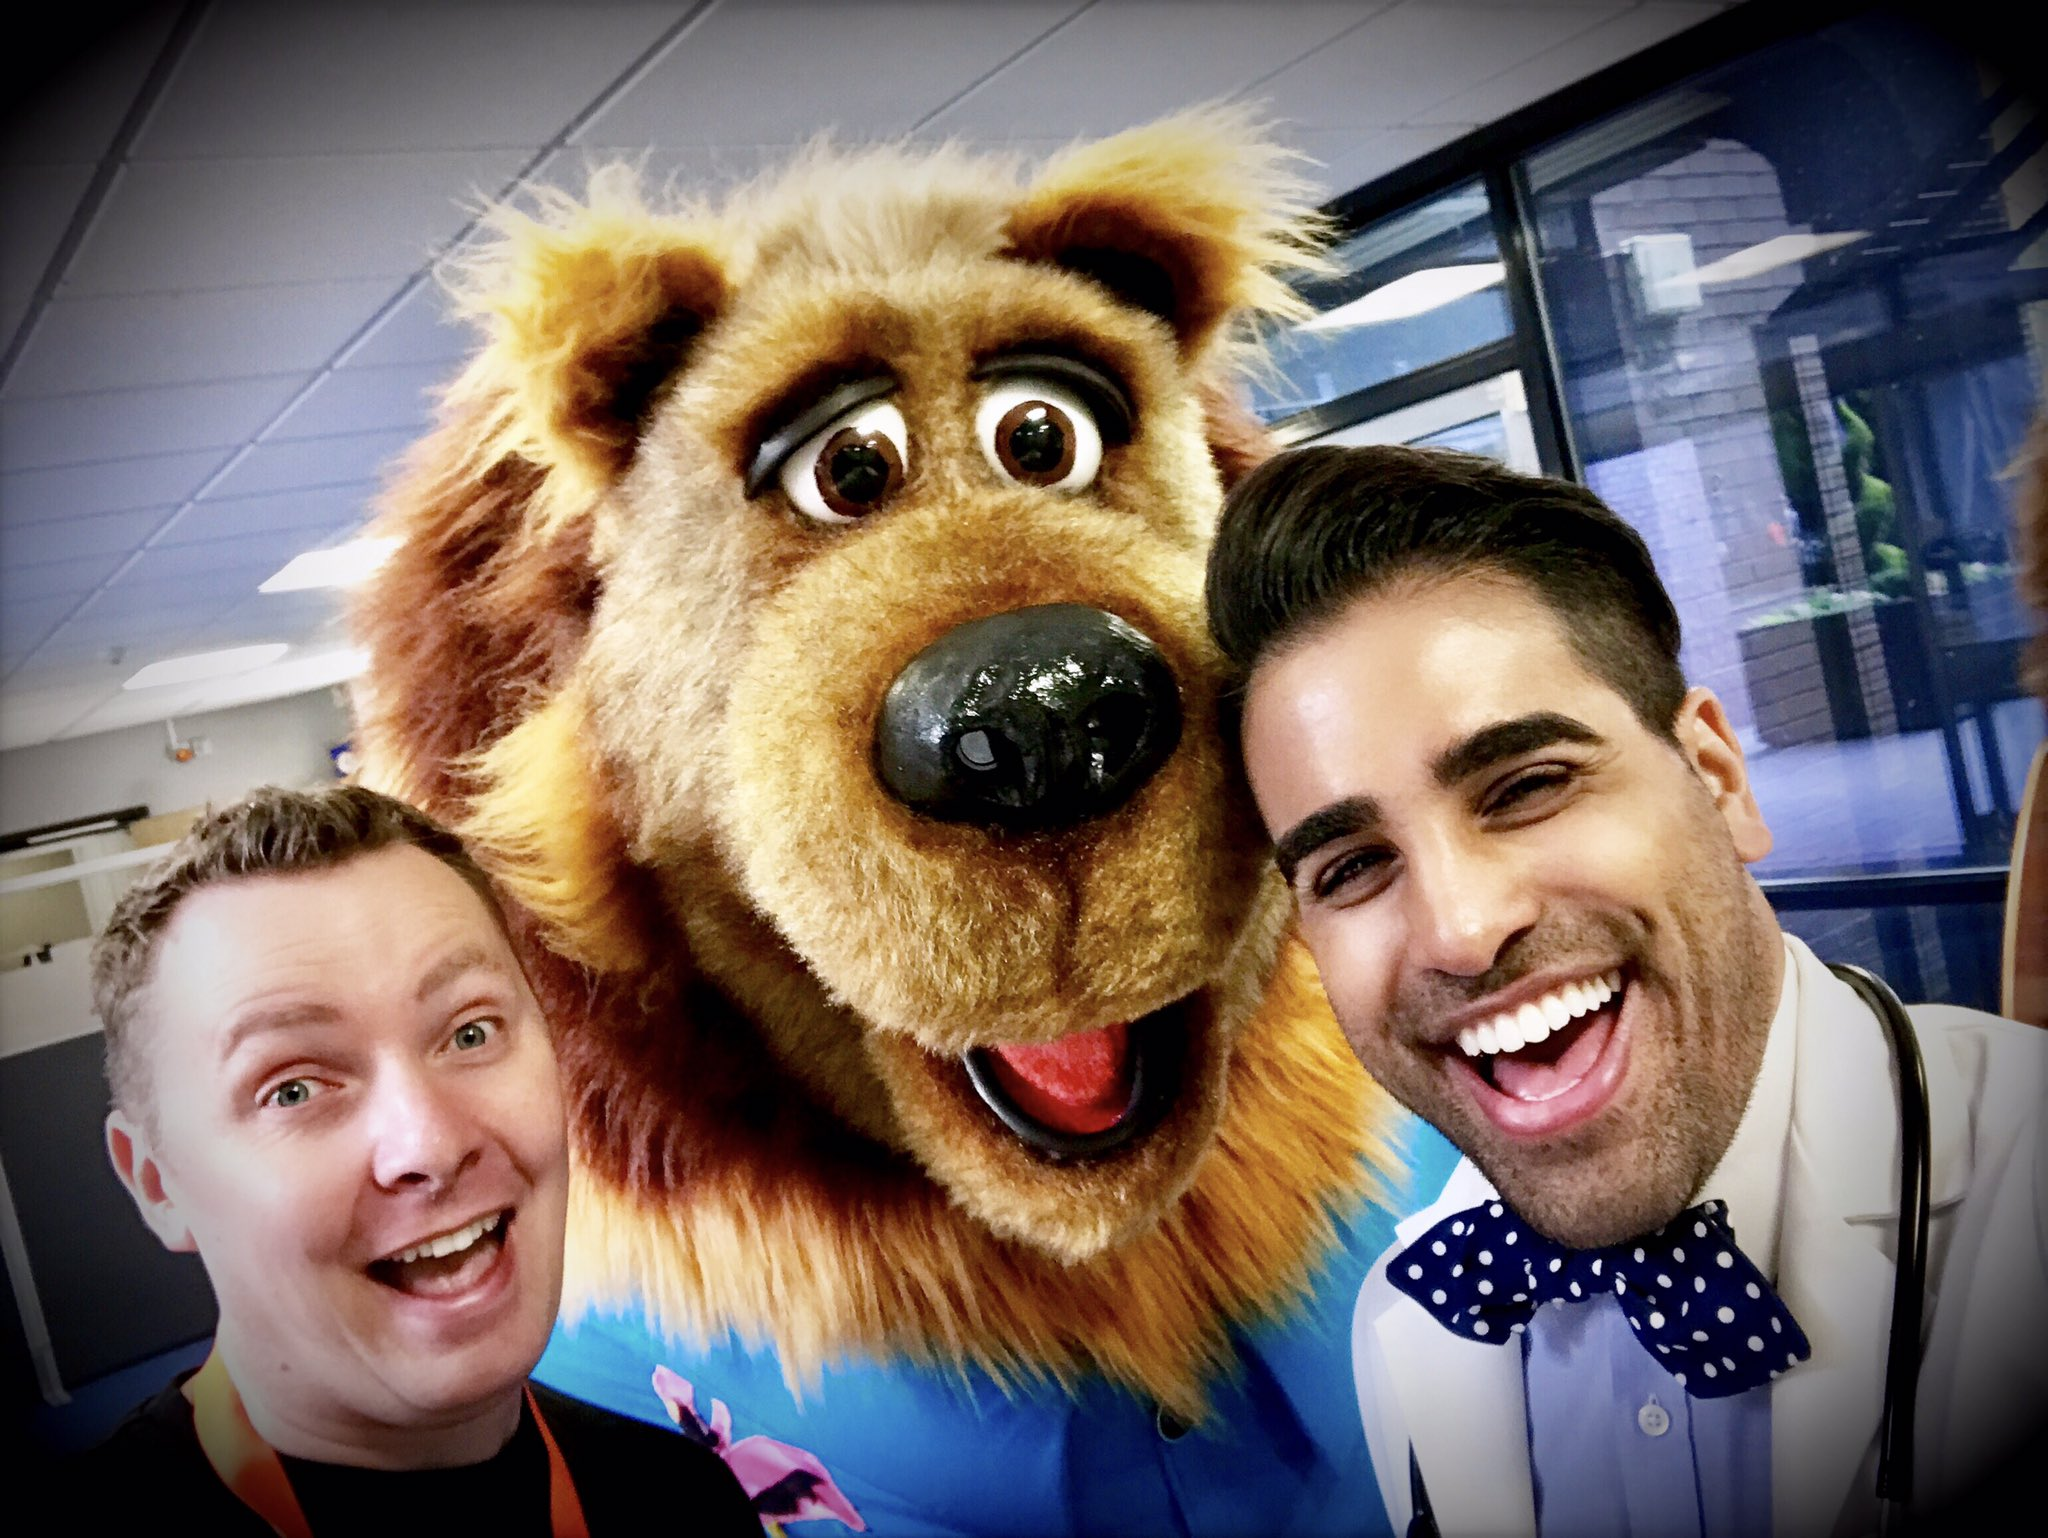 What a cracking first show at @boromela with this dream team today! #DrRanjsTeddyBearHospital  @The_Olly_Taylor @MagicMrSteve ❤️ https://t.co/HxeFwSKBmd